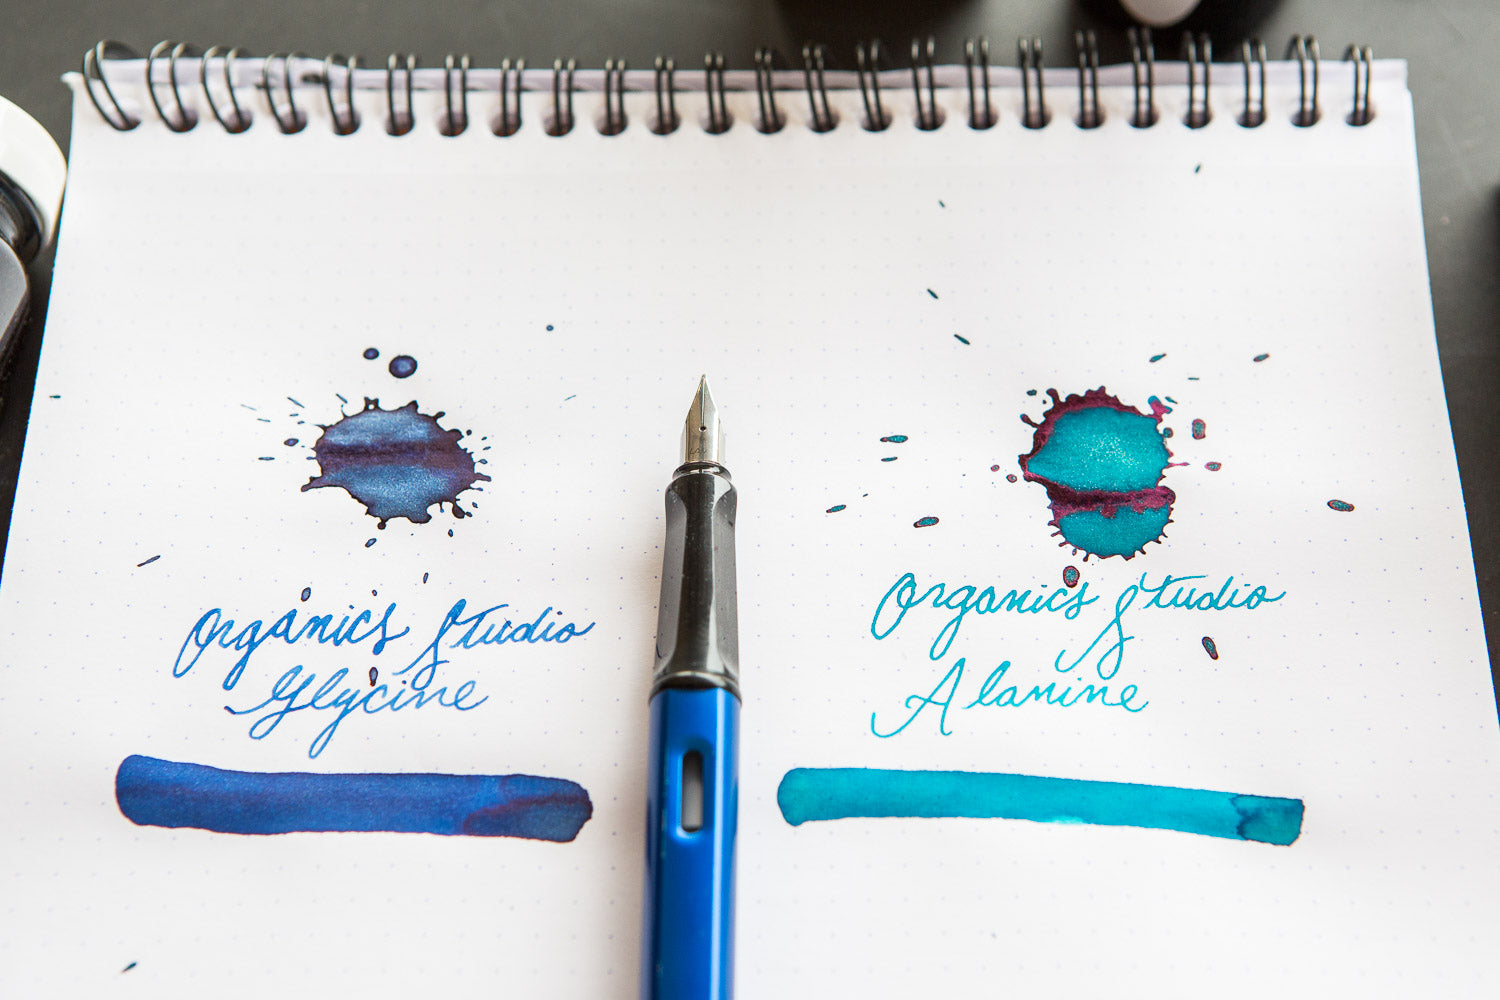 Organics Studio Alanine - Ink Sample